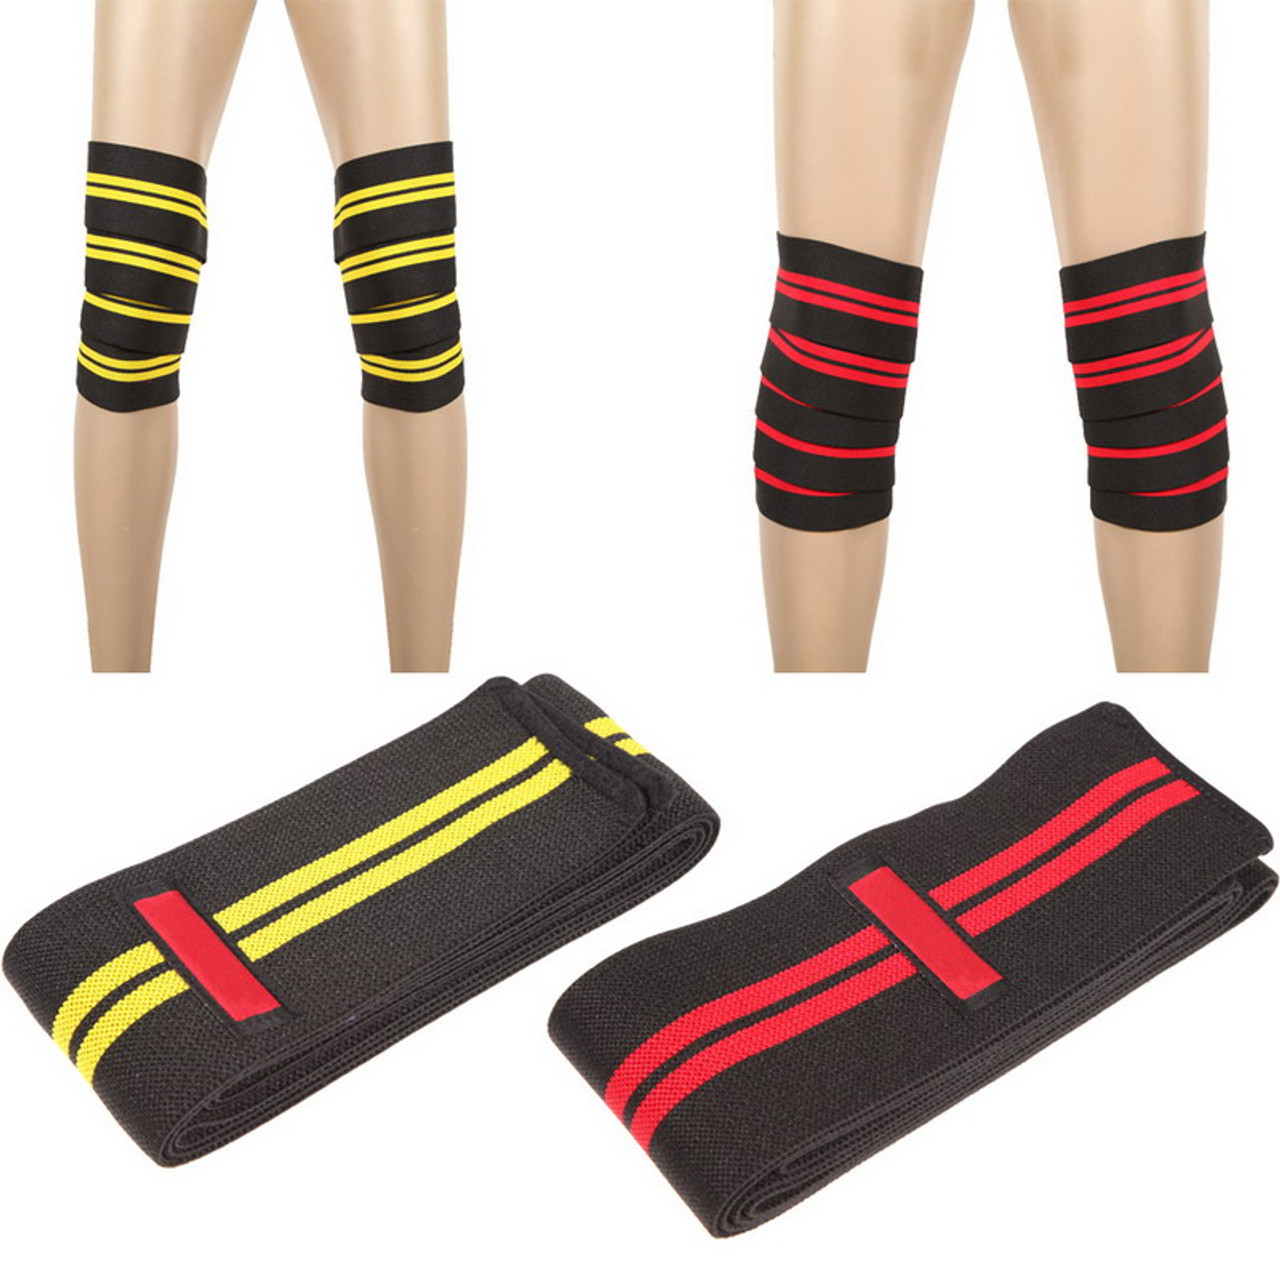 2df95cb877 Aolikes Knee Ankle Support Power Lifter Weight Lifting Knee Wraps Gym  Training Fist Straps Sports Bandage ...